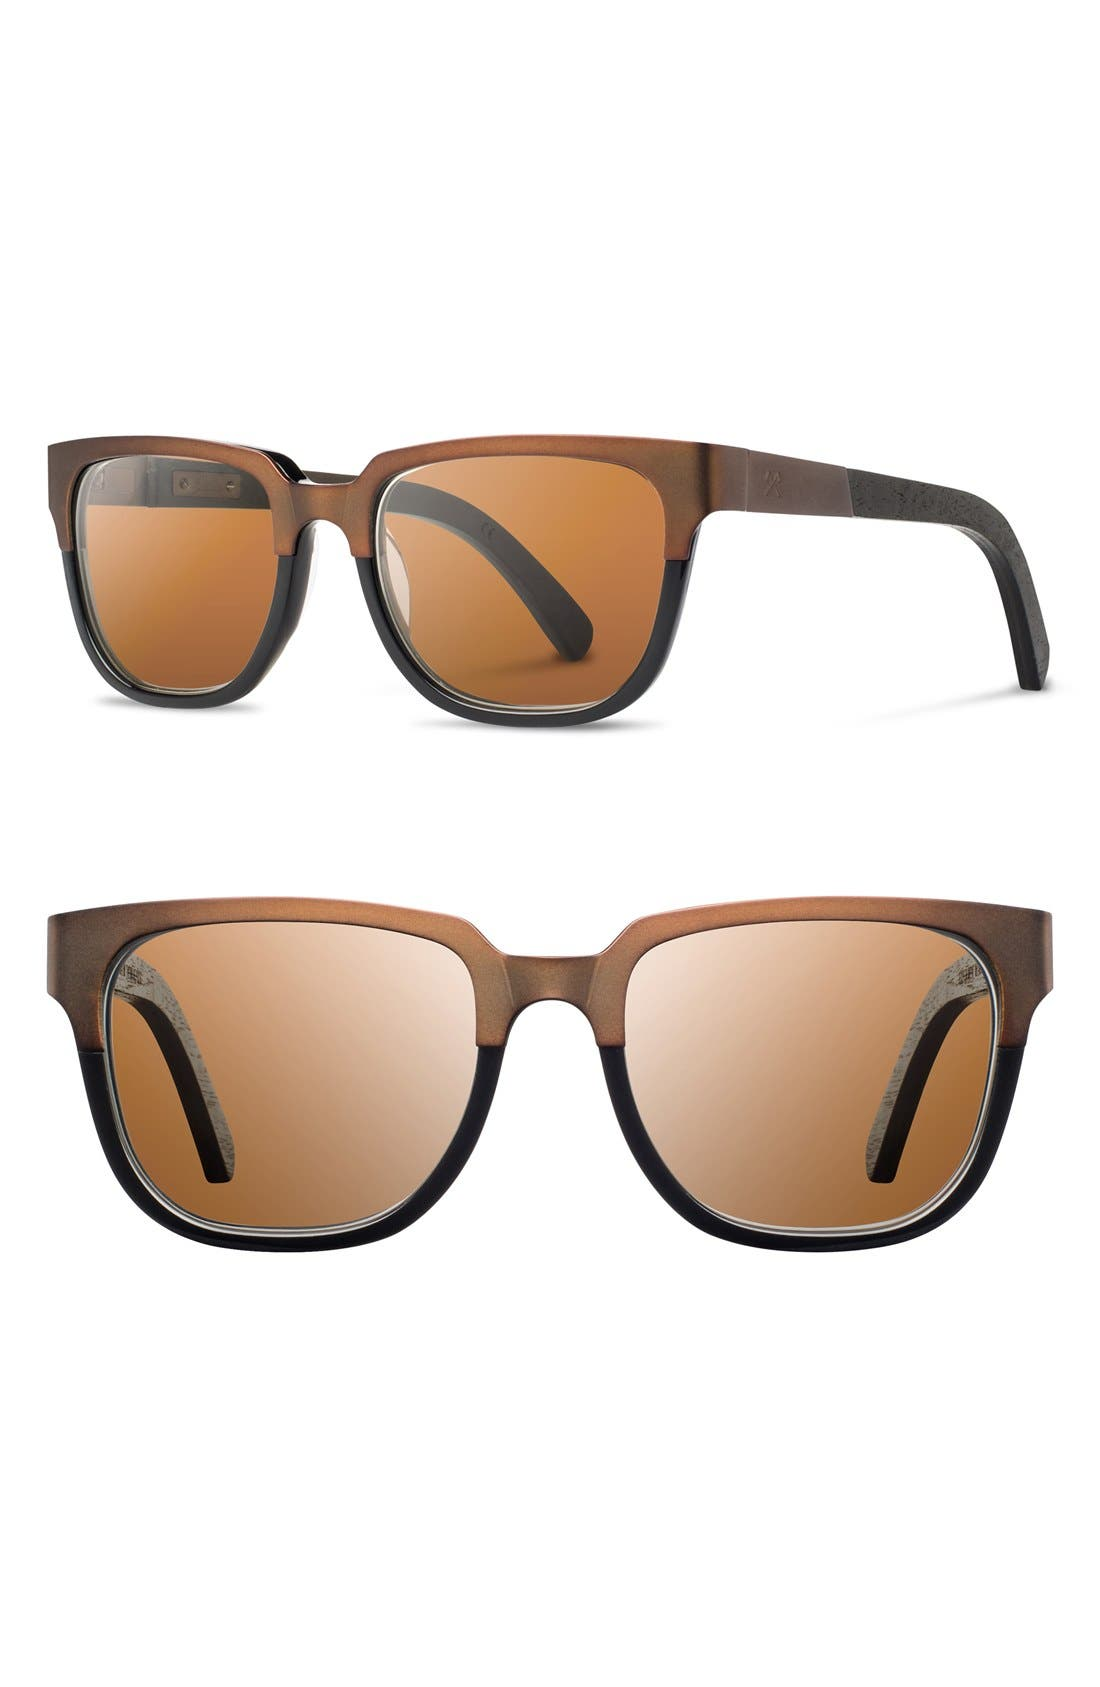 SHWOOD Prescott 52mm Polarized Titanium & Wood Sunglasses